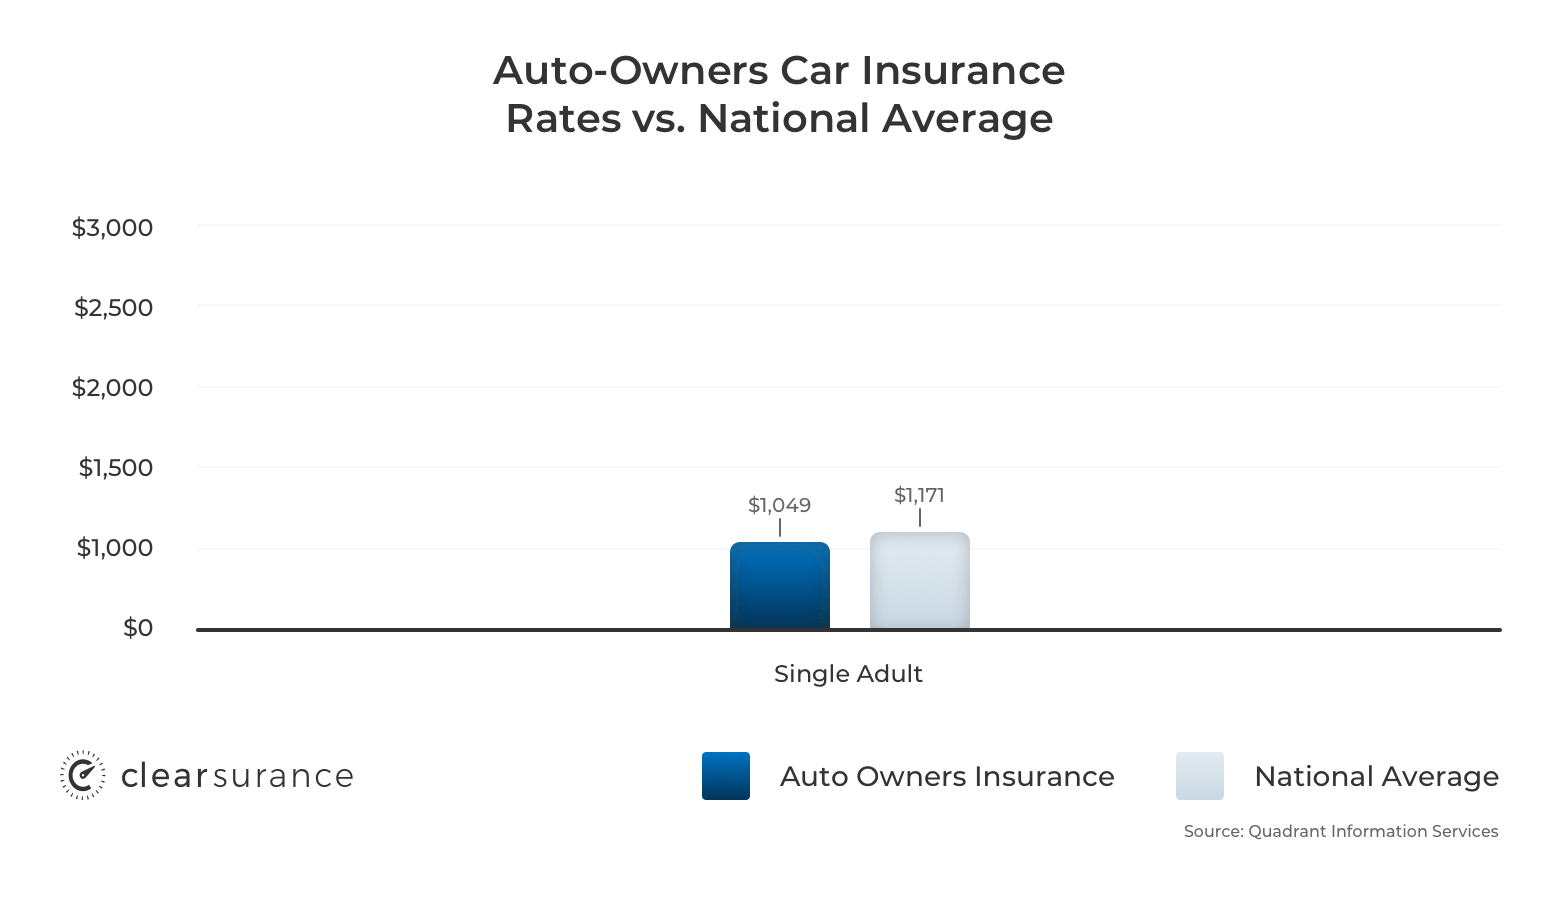 Auto-Owners car insurance rates